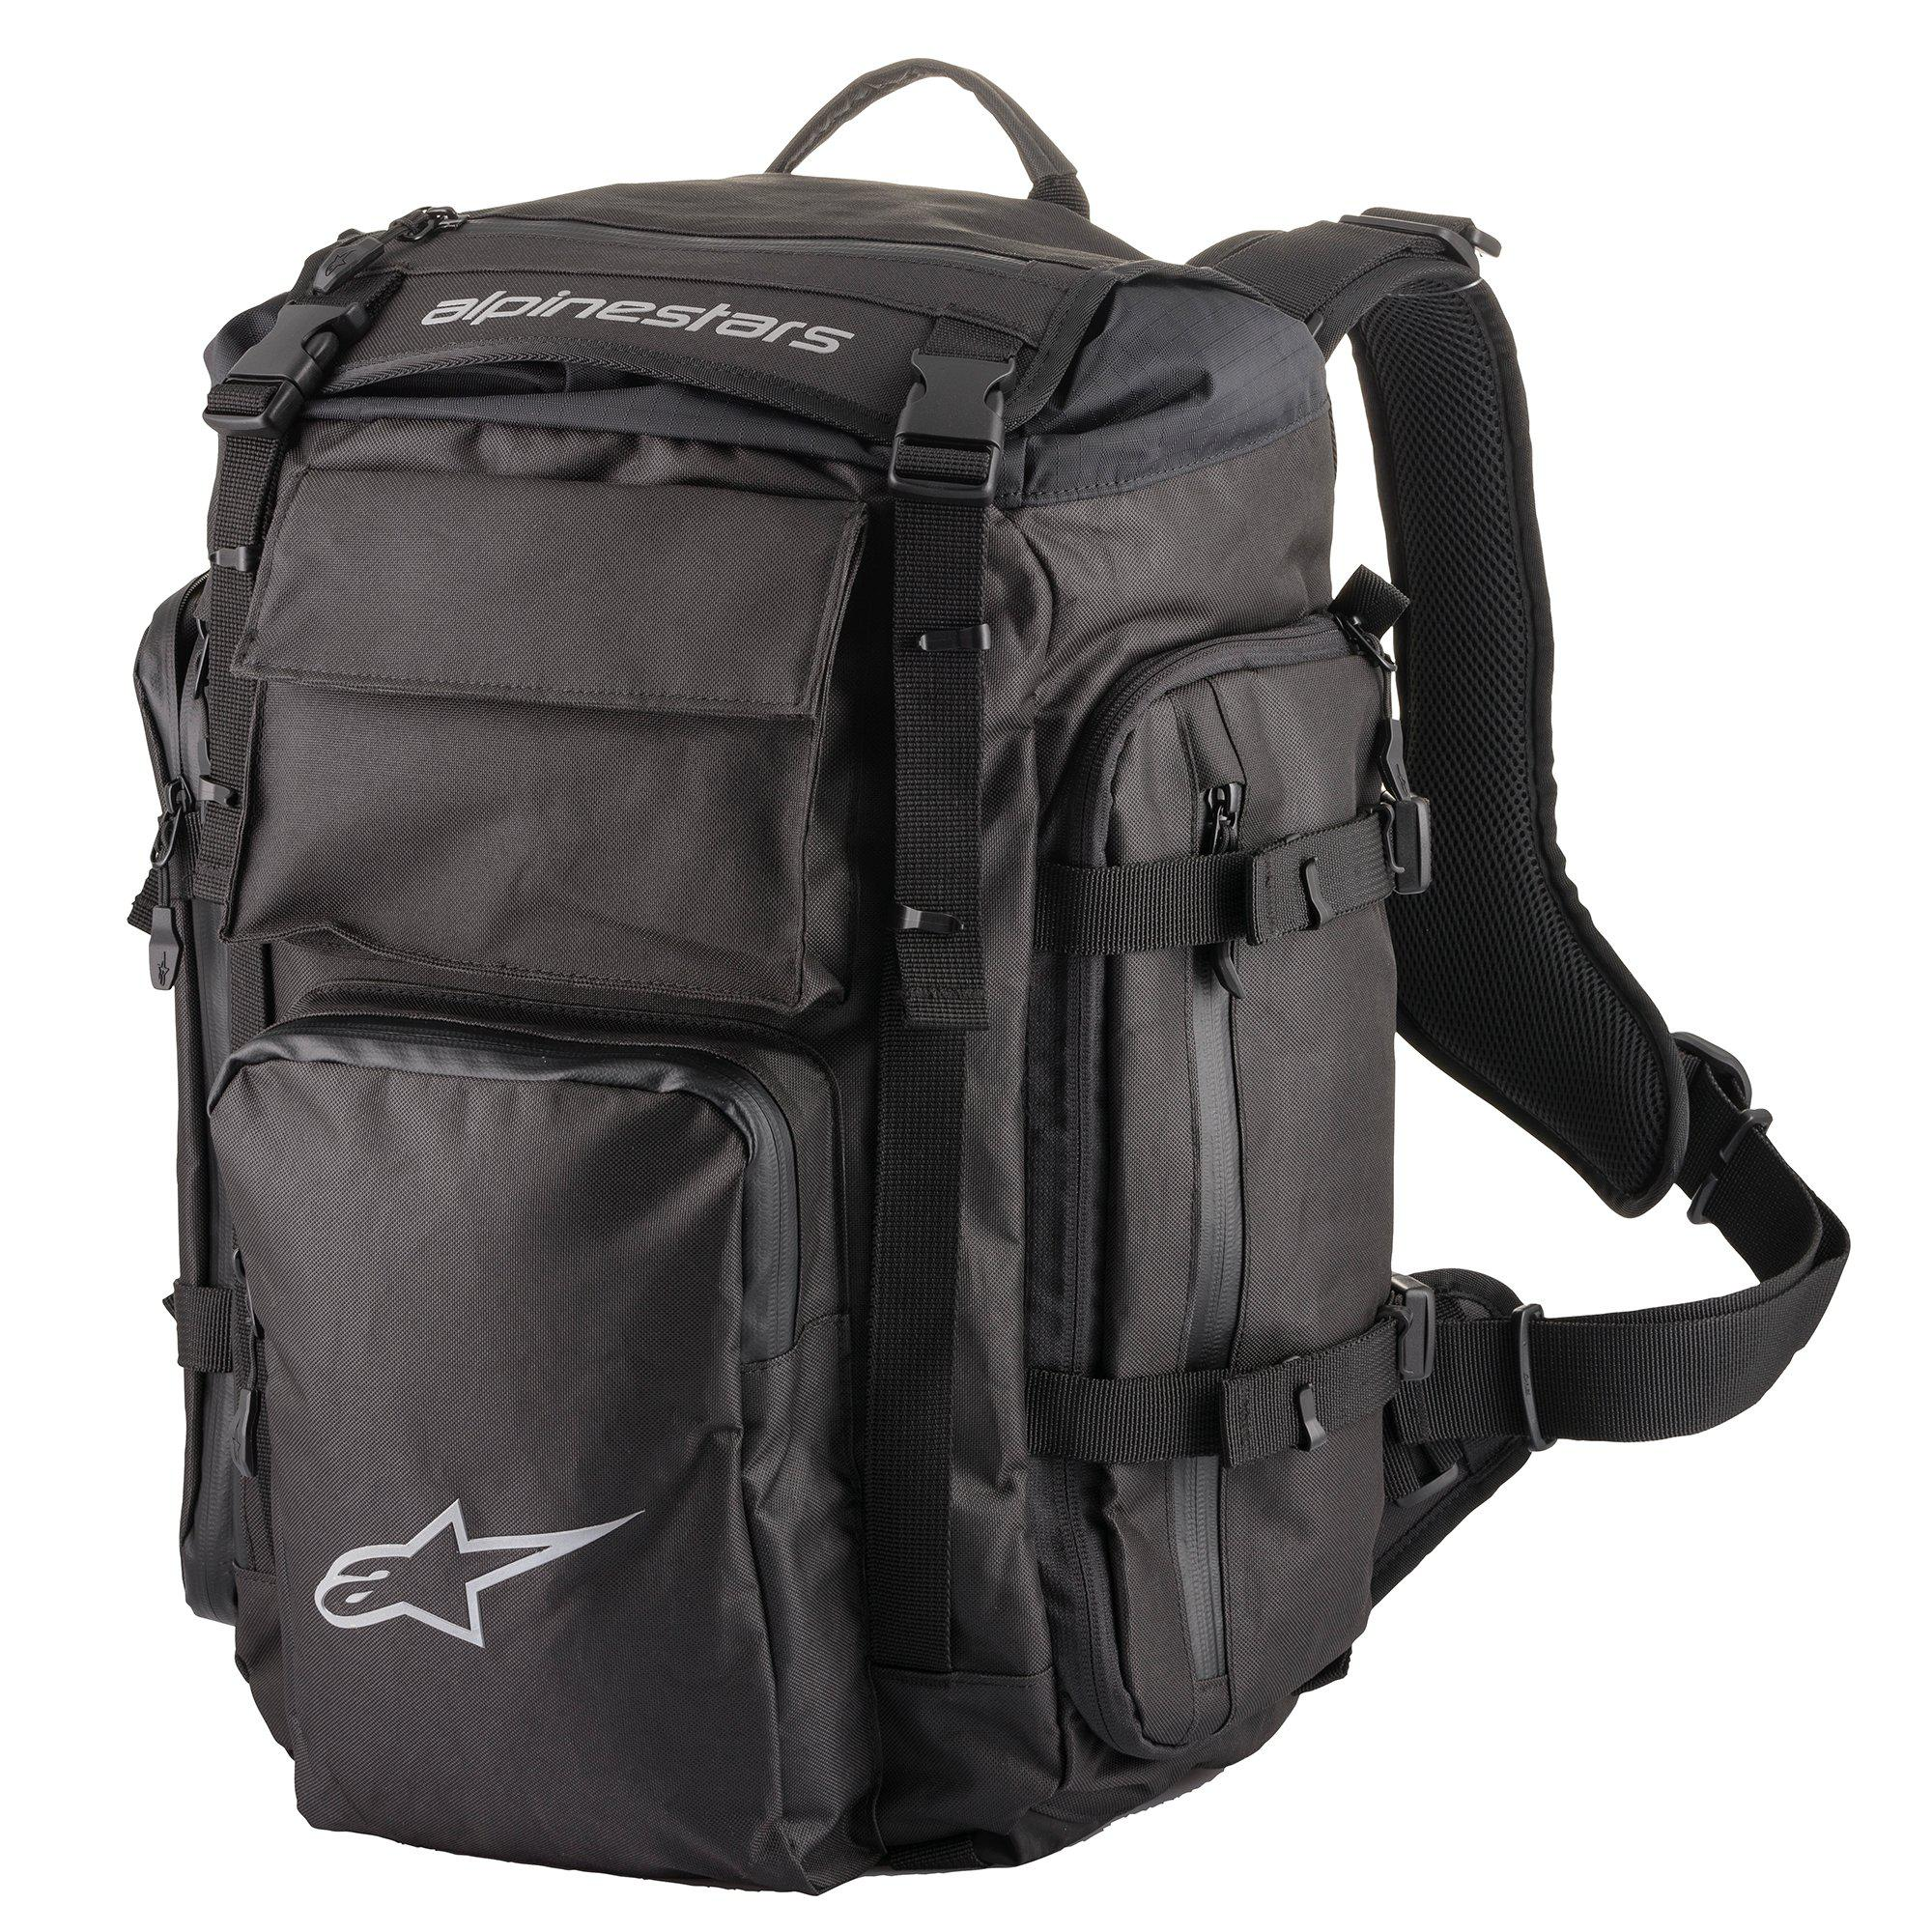 Rover Overland Backpack